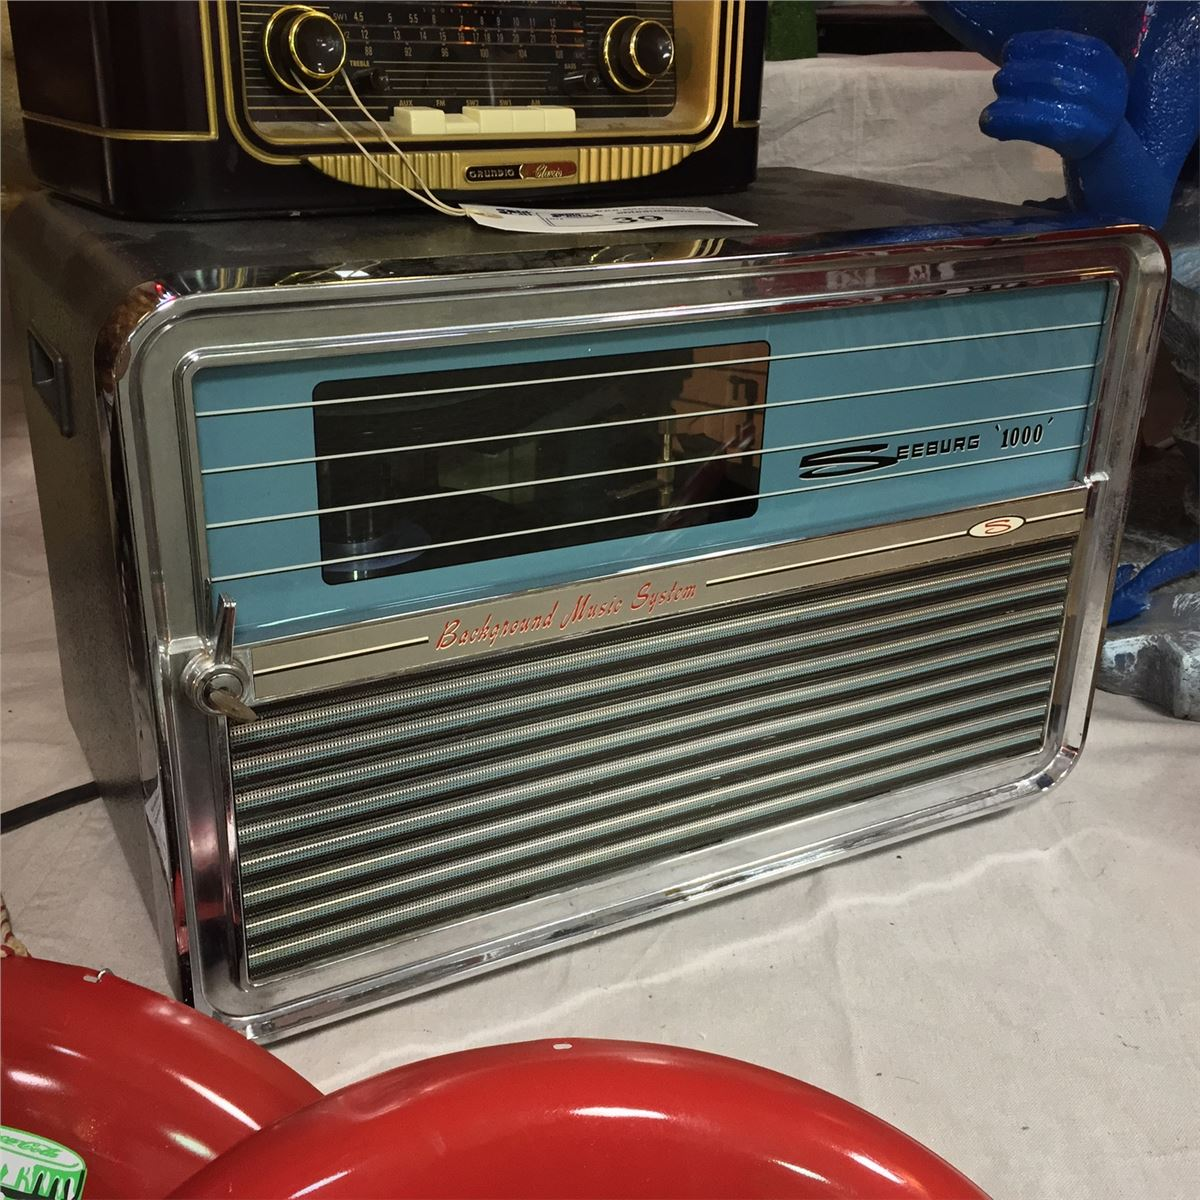 VINTAGE SEEBURG 1000 TABLE TOP JUKEBOX